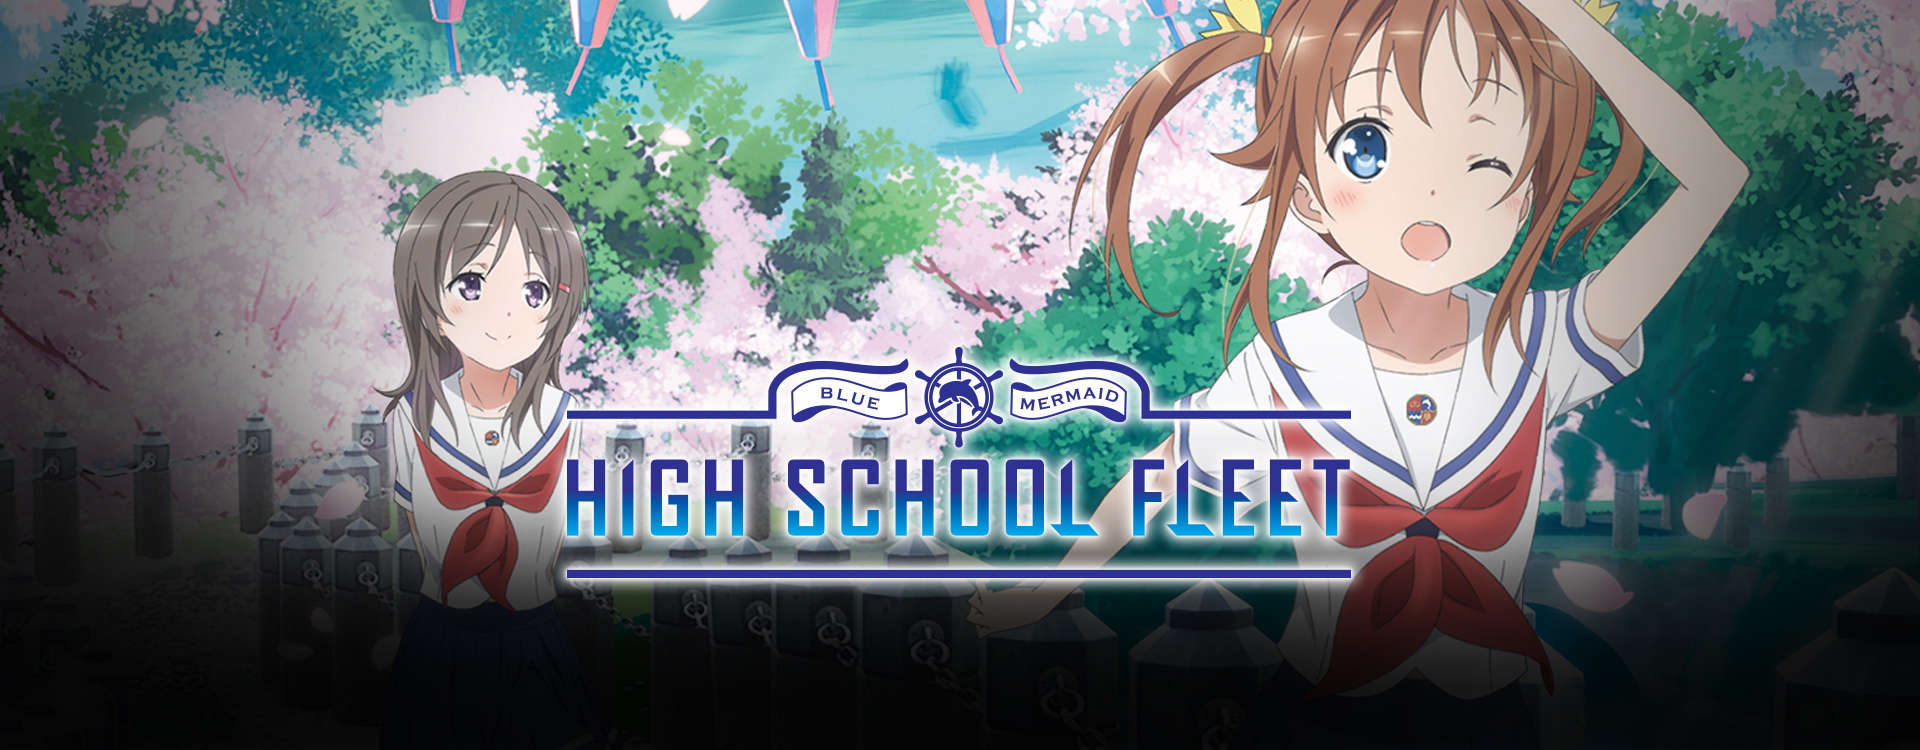 High School Fleet